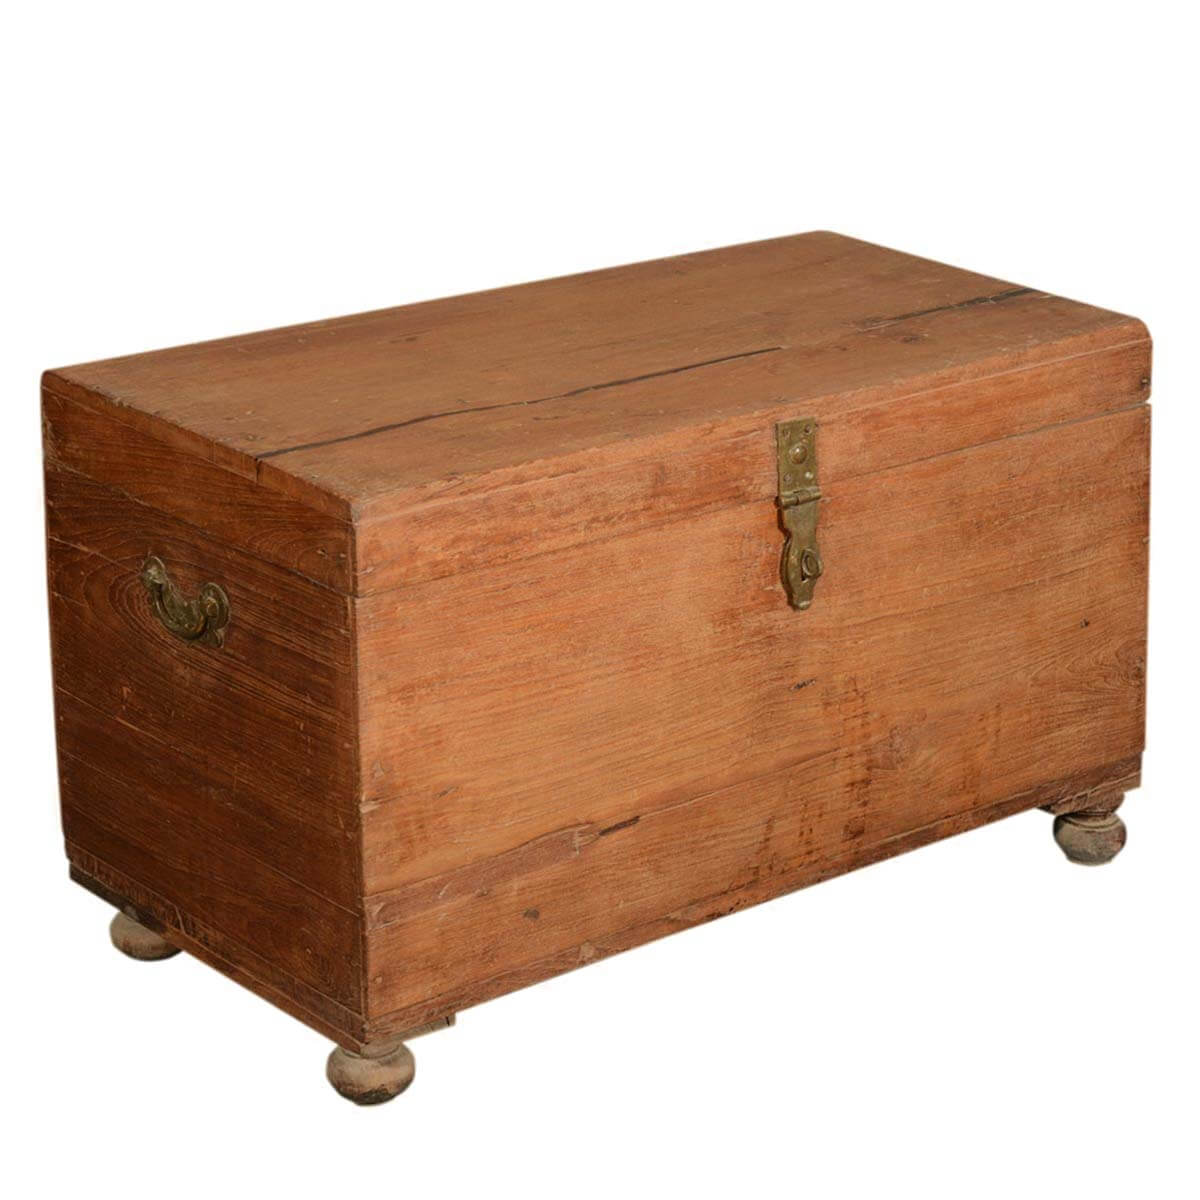 Grinnell primitive reclaimed wood storage coffee table chest for Reclaimed wood coffee table with storage